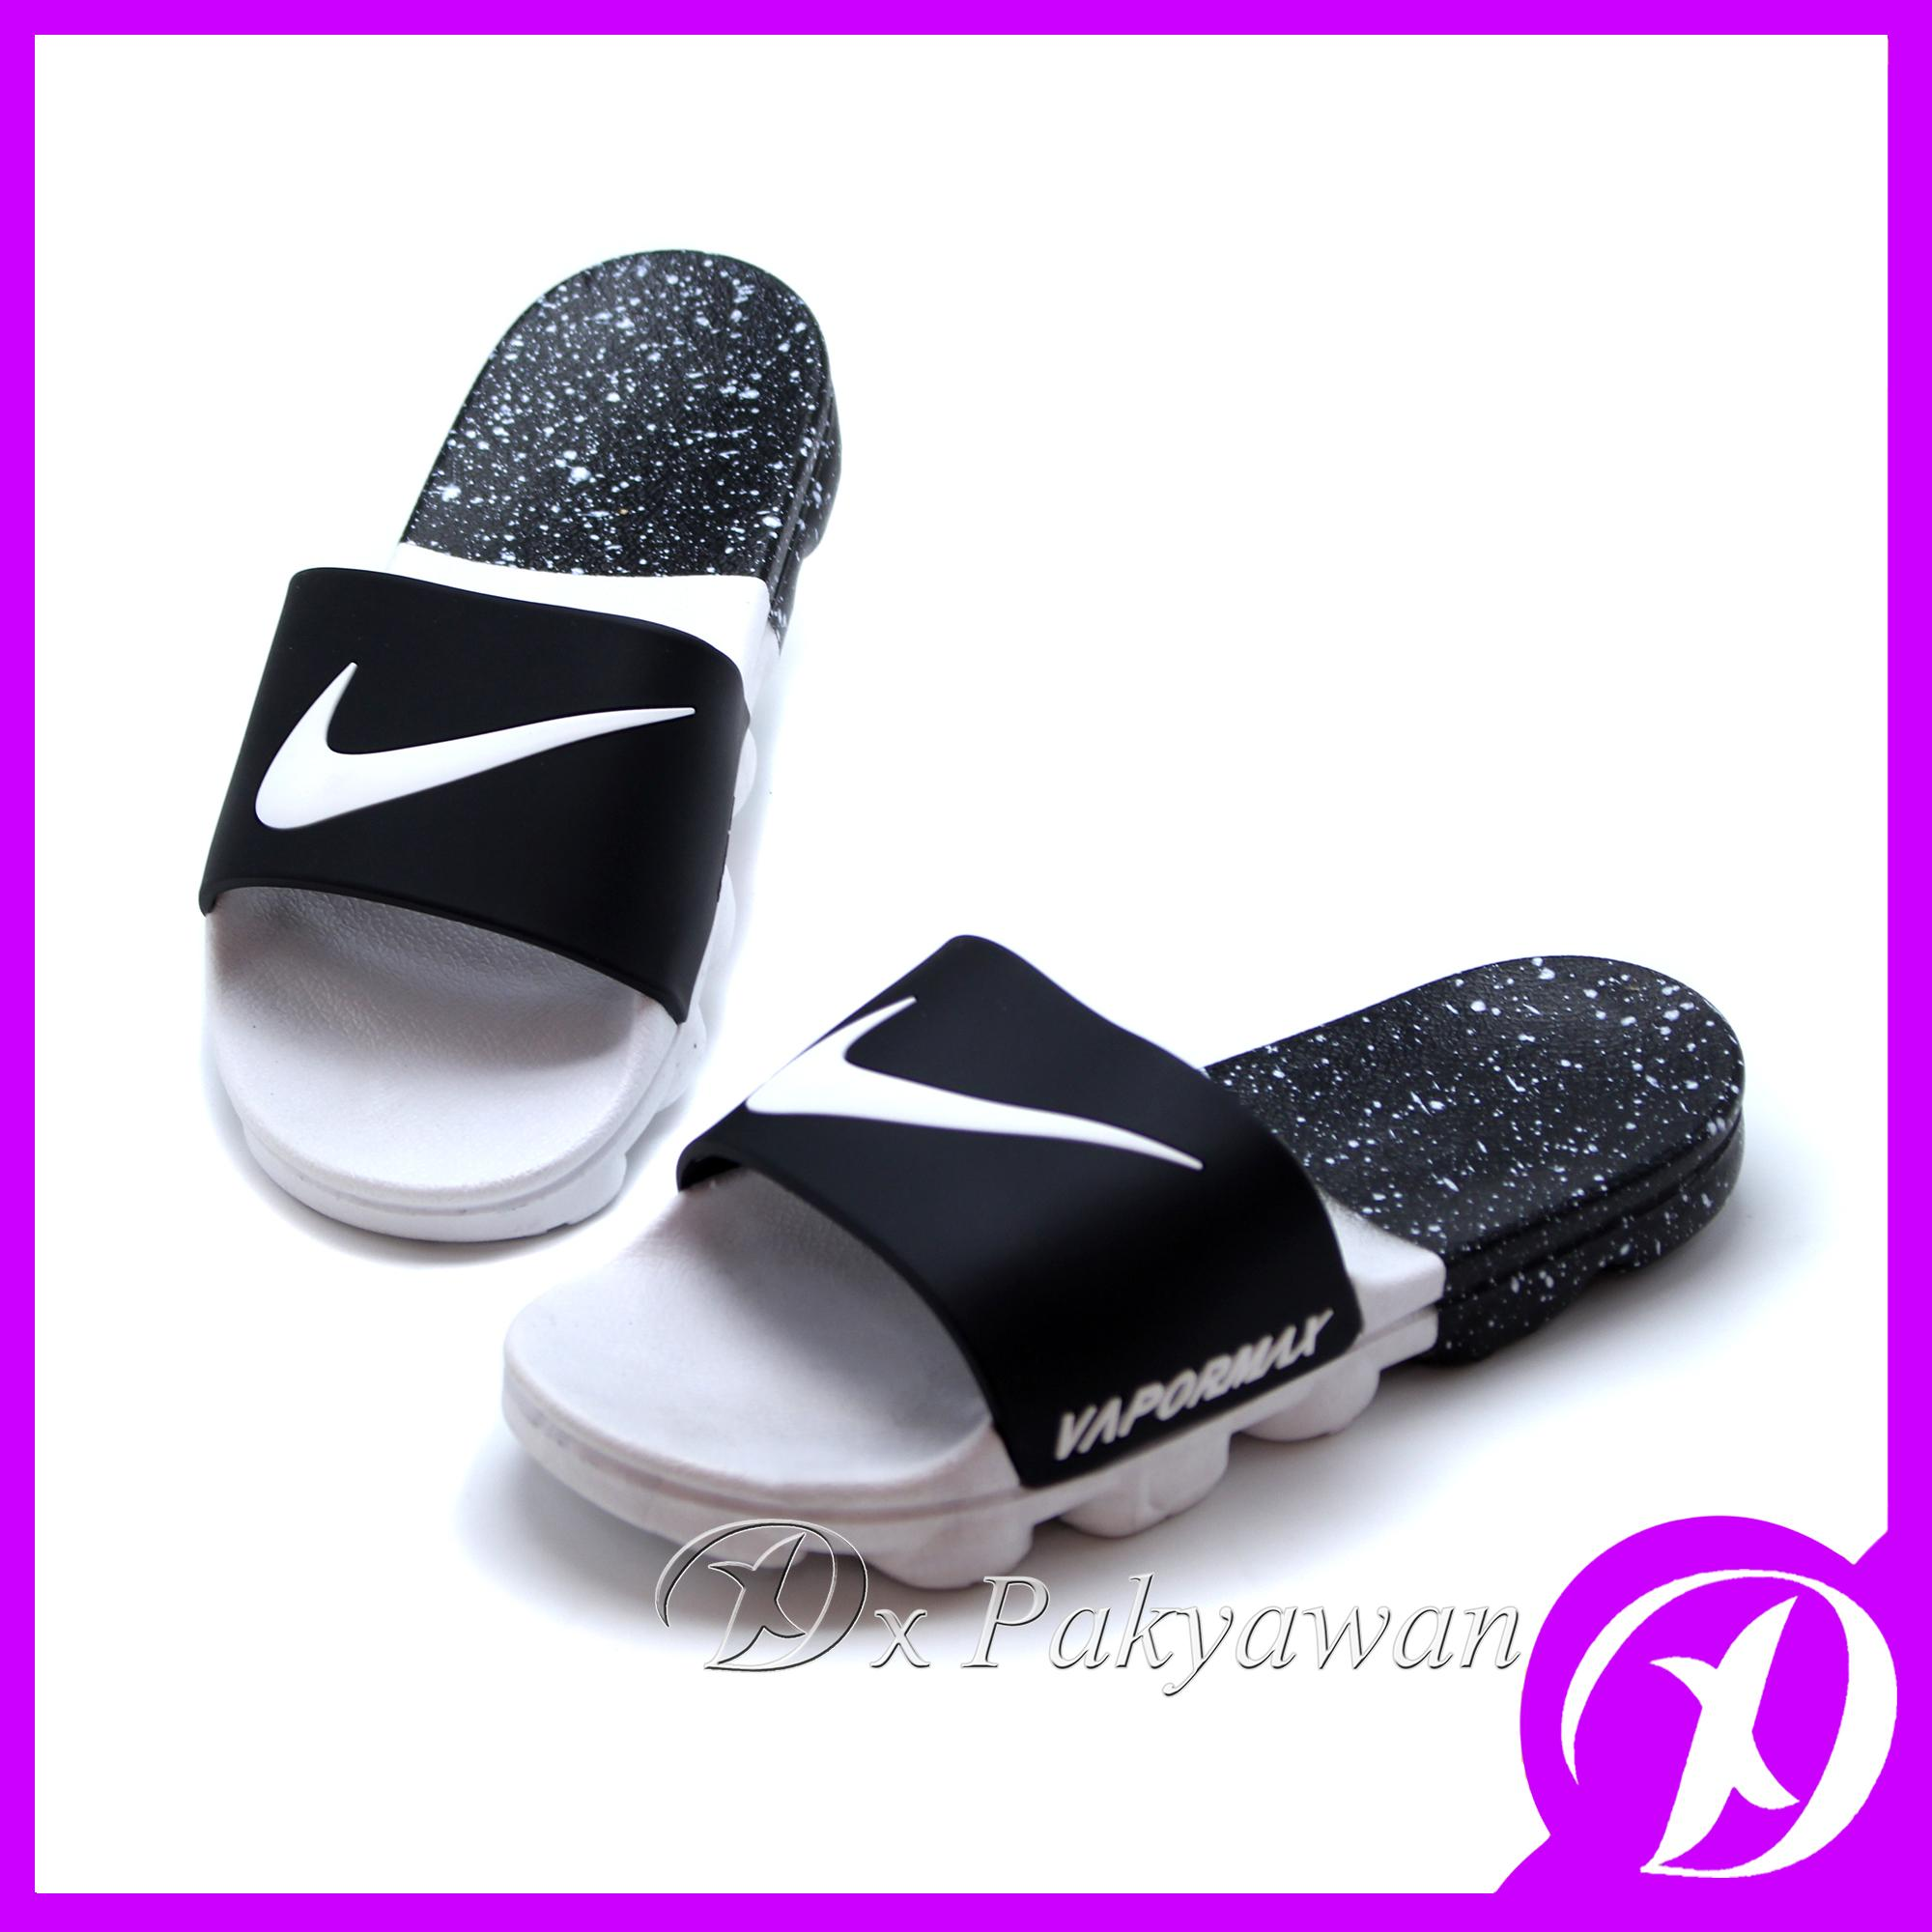 2407f0757 House Slippers for Women for sale - Slippers for Women Online Deals ...